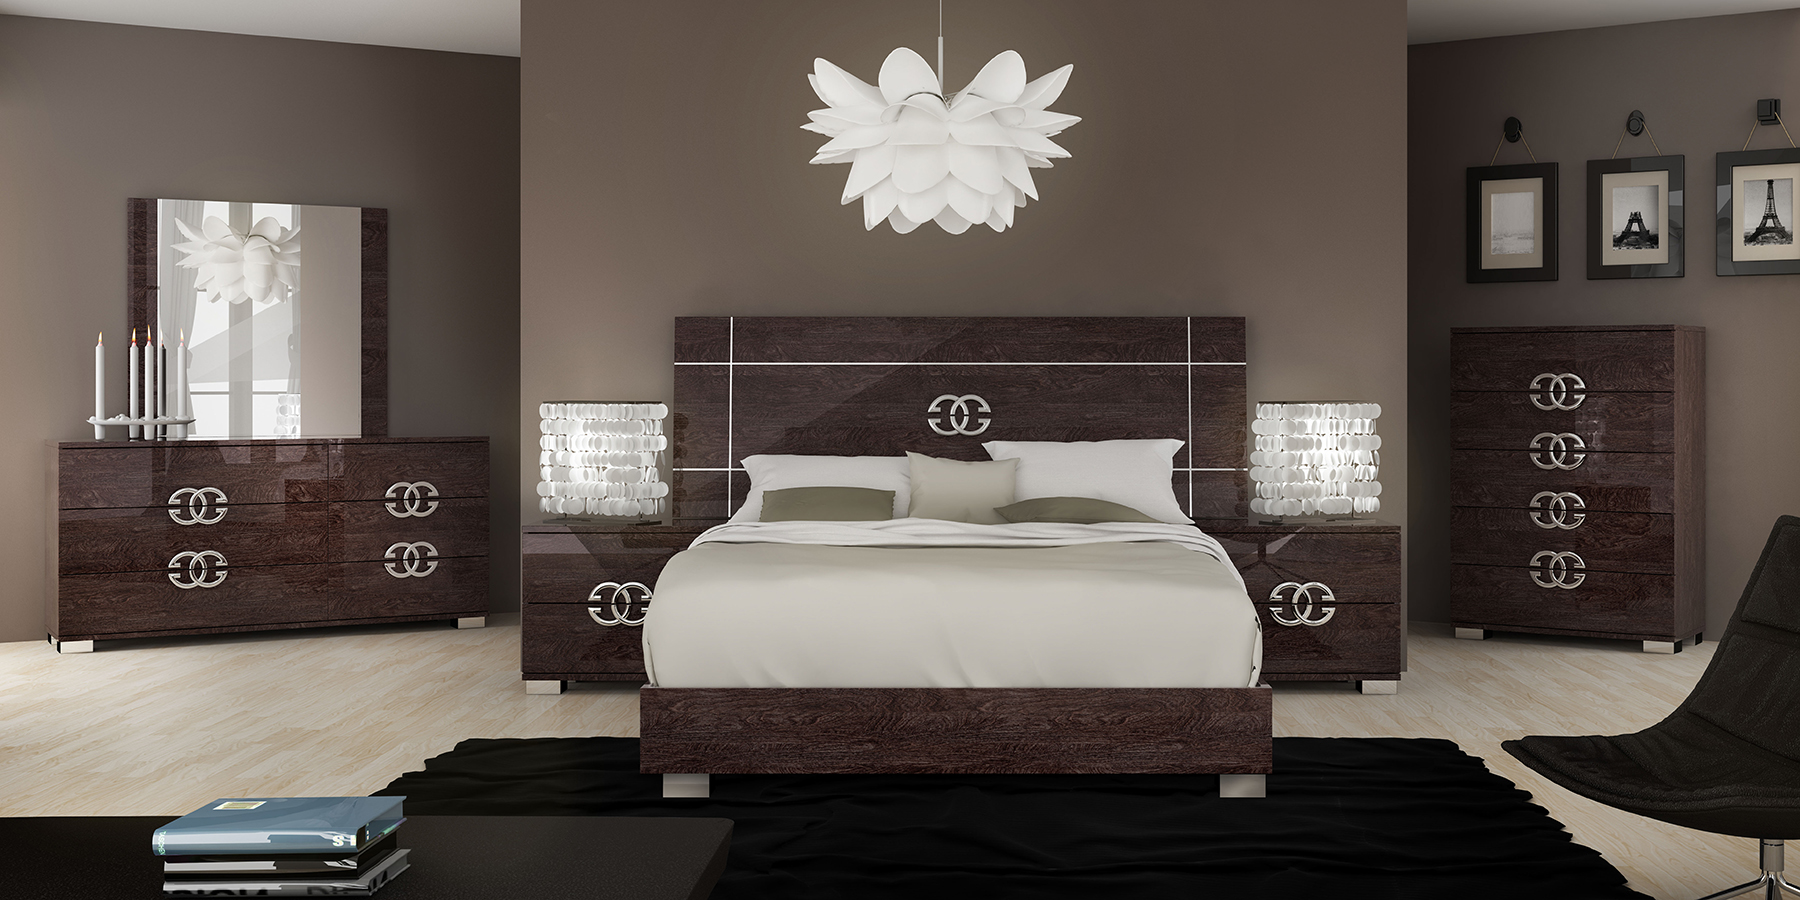 prestige classic modern bedrooms bedroom furniture 16337 | bedroom furniture modern bedrooms prestige classic side 5